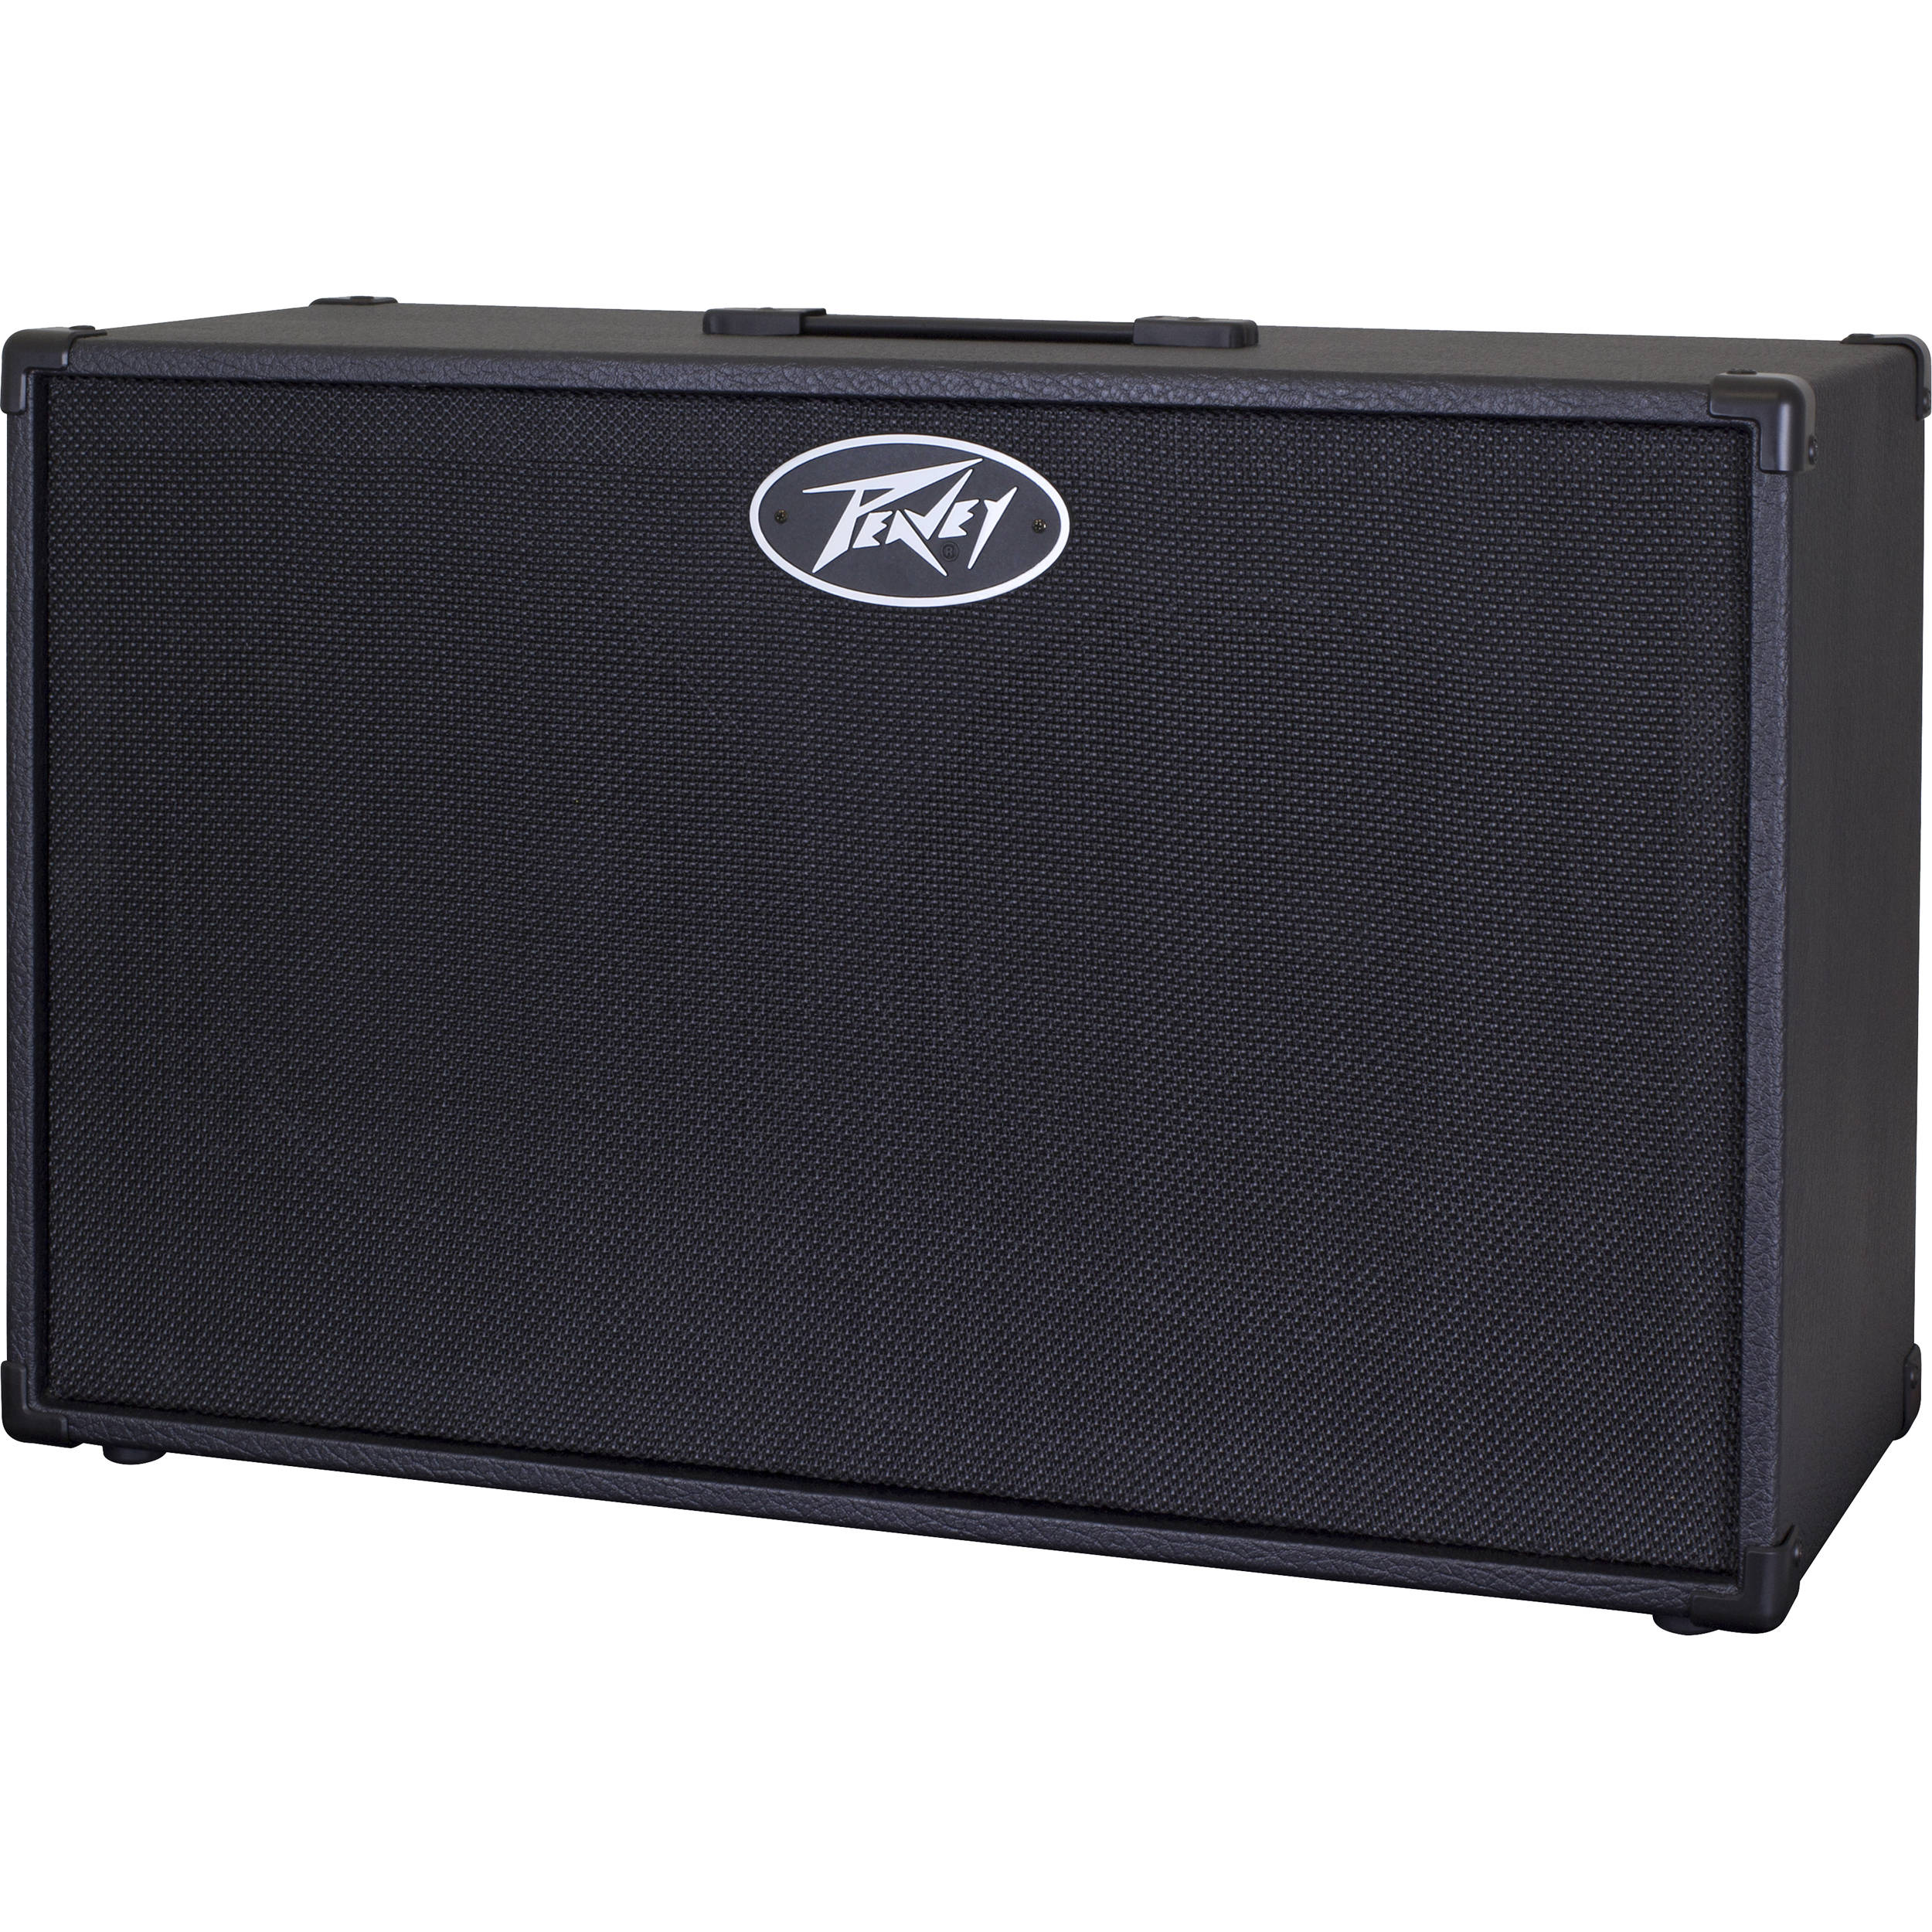 peavey 212 extension cabinet 2x12 guitar cab with 80 watts rms power rating ebay. Black Bedroom Furniture Sets. Home Design Ideas